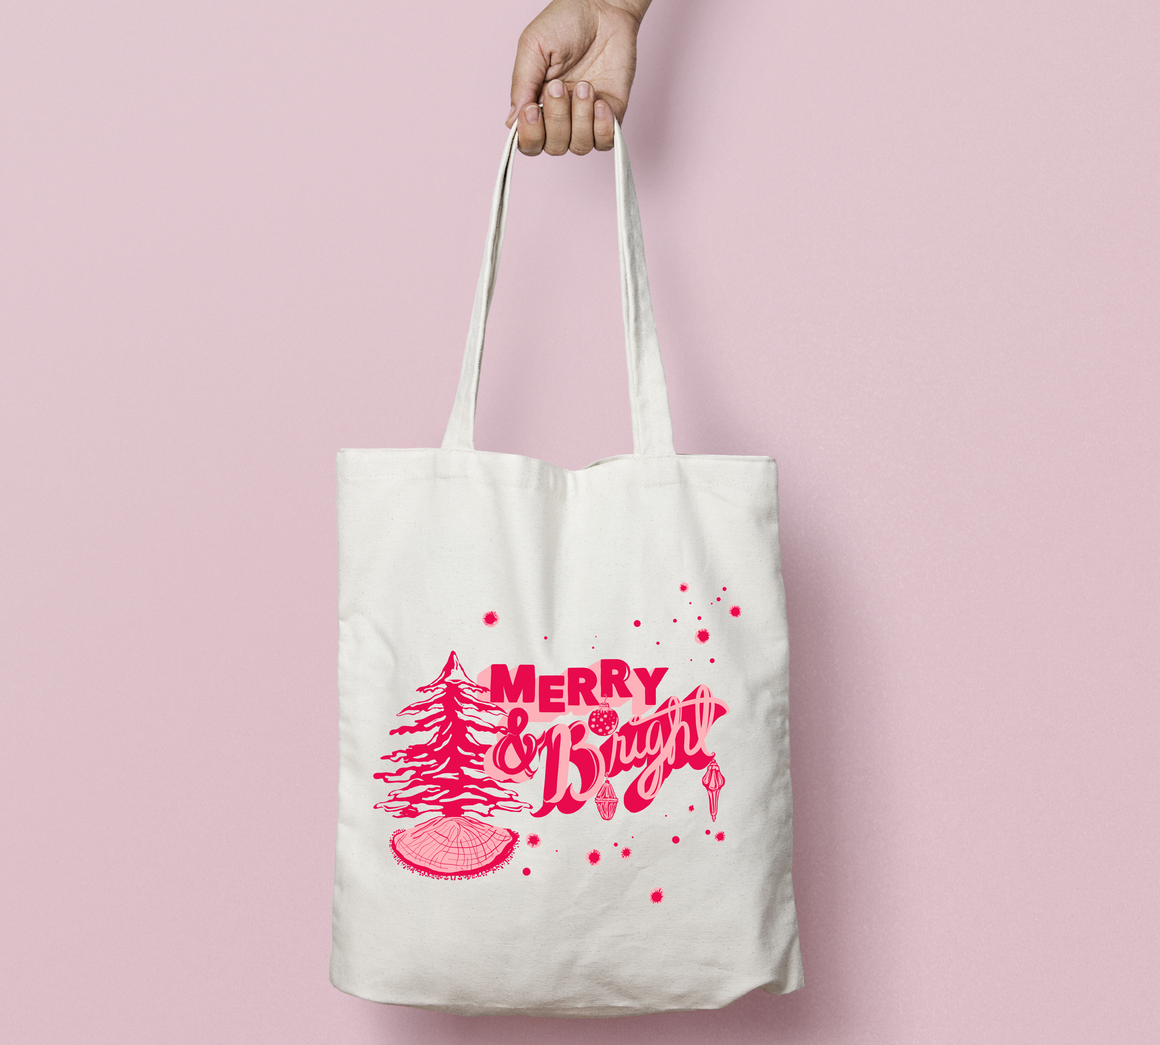 Merry & Bright Holiday Tote